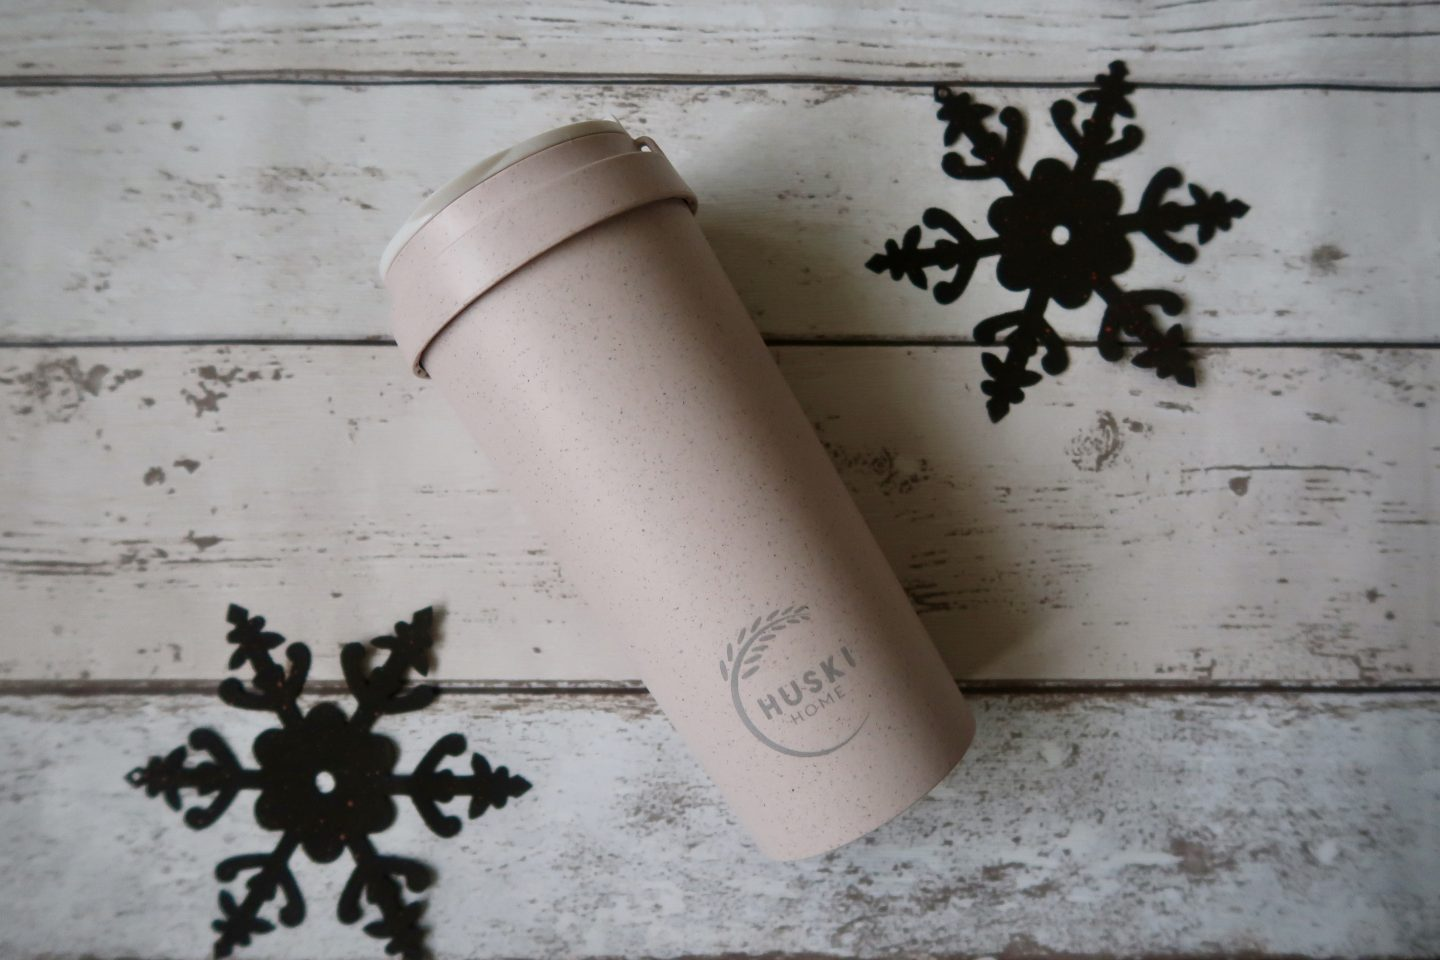 A pale pink travel cup lying on white wooden floorboards with 2 metal snowflakes